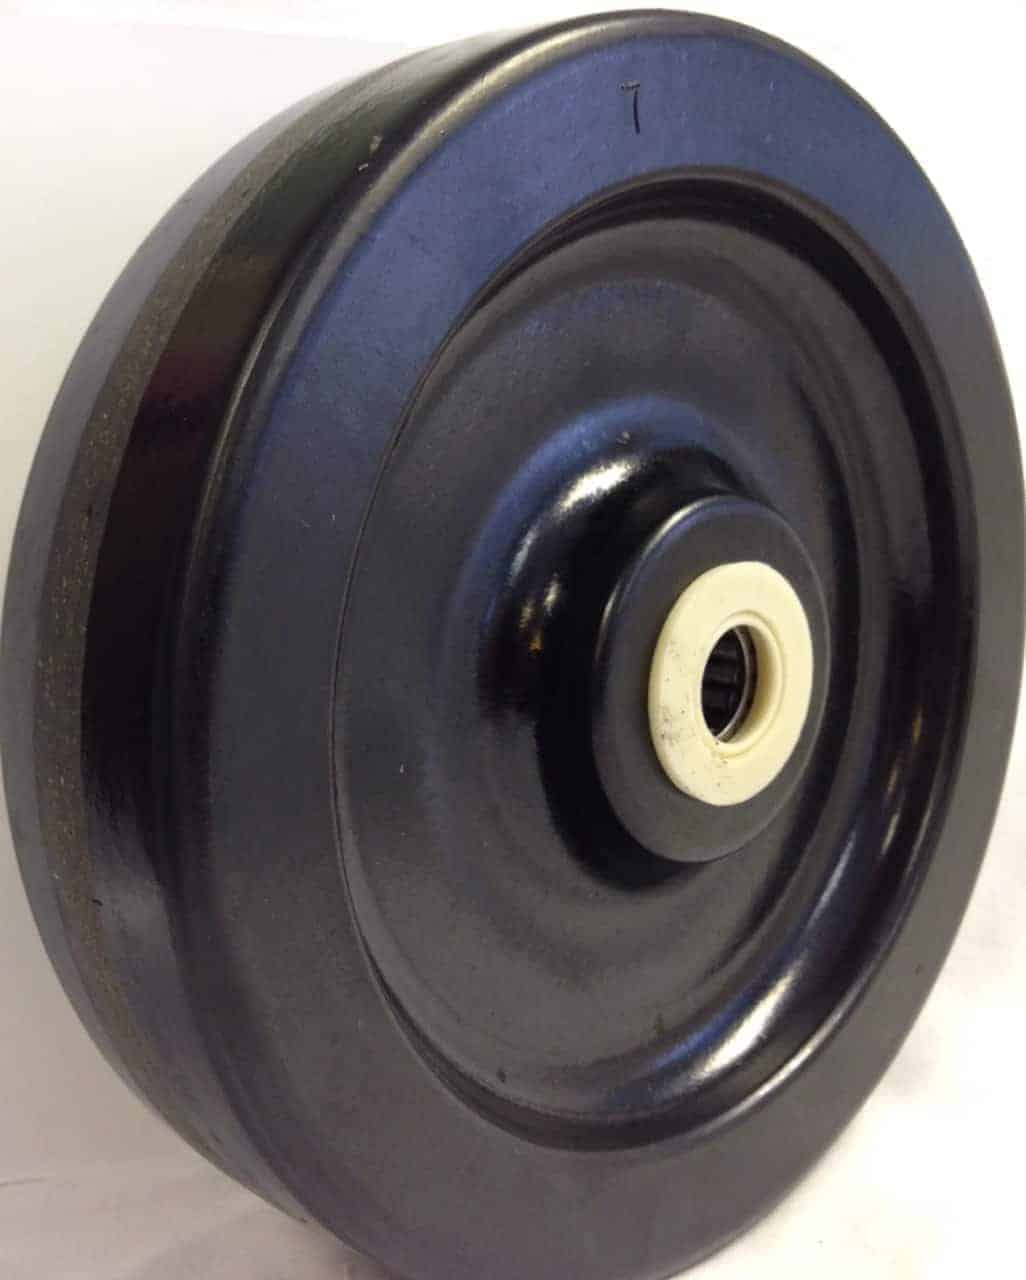 8″ Phenolic Wheel With 3-1/4″ Hub 1″ Roller Bearing 2000 Lbs Capacity